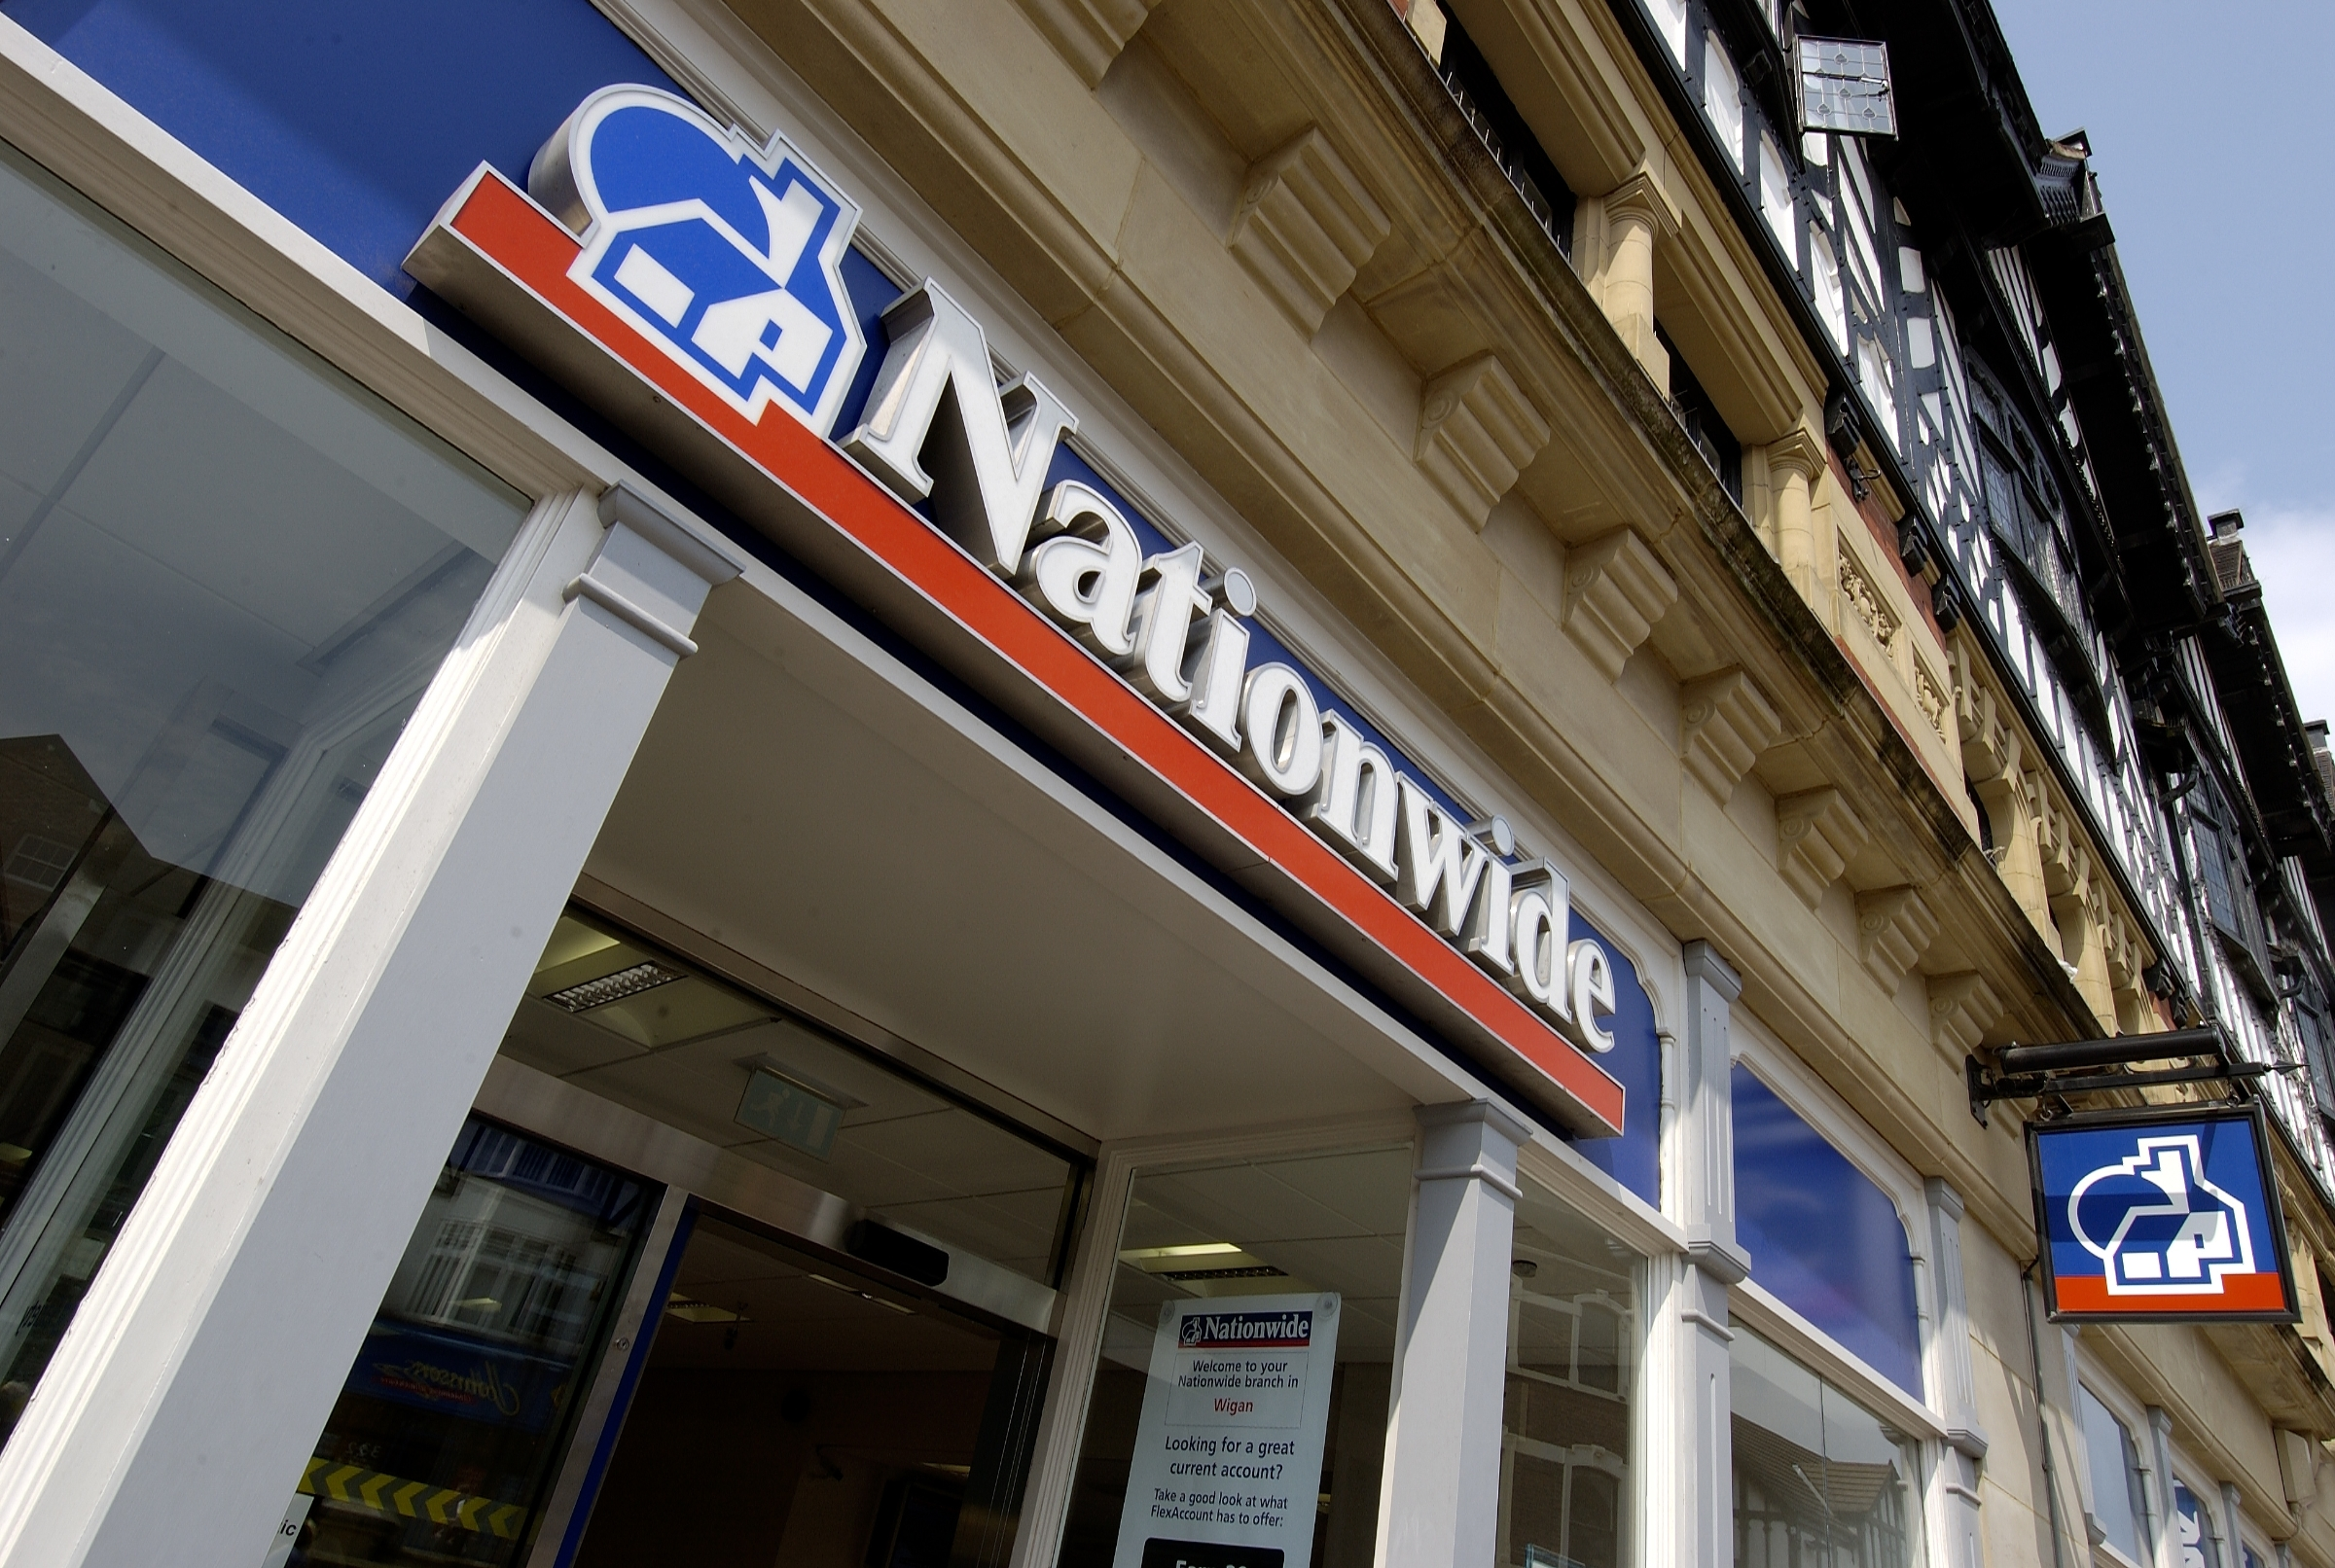 Challengers such as Nationwide and Metro Bank will benefit from the new rules, which are designed to drive up competition